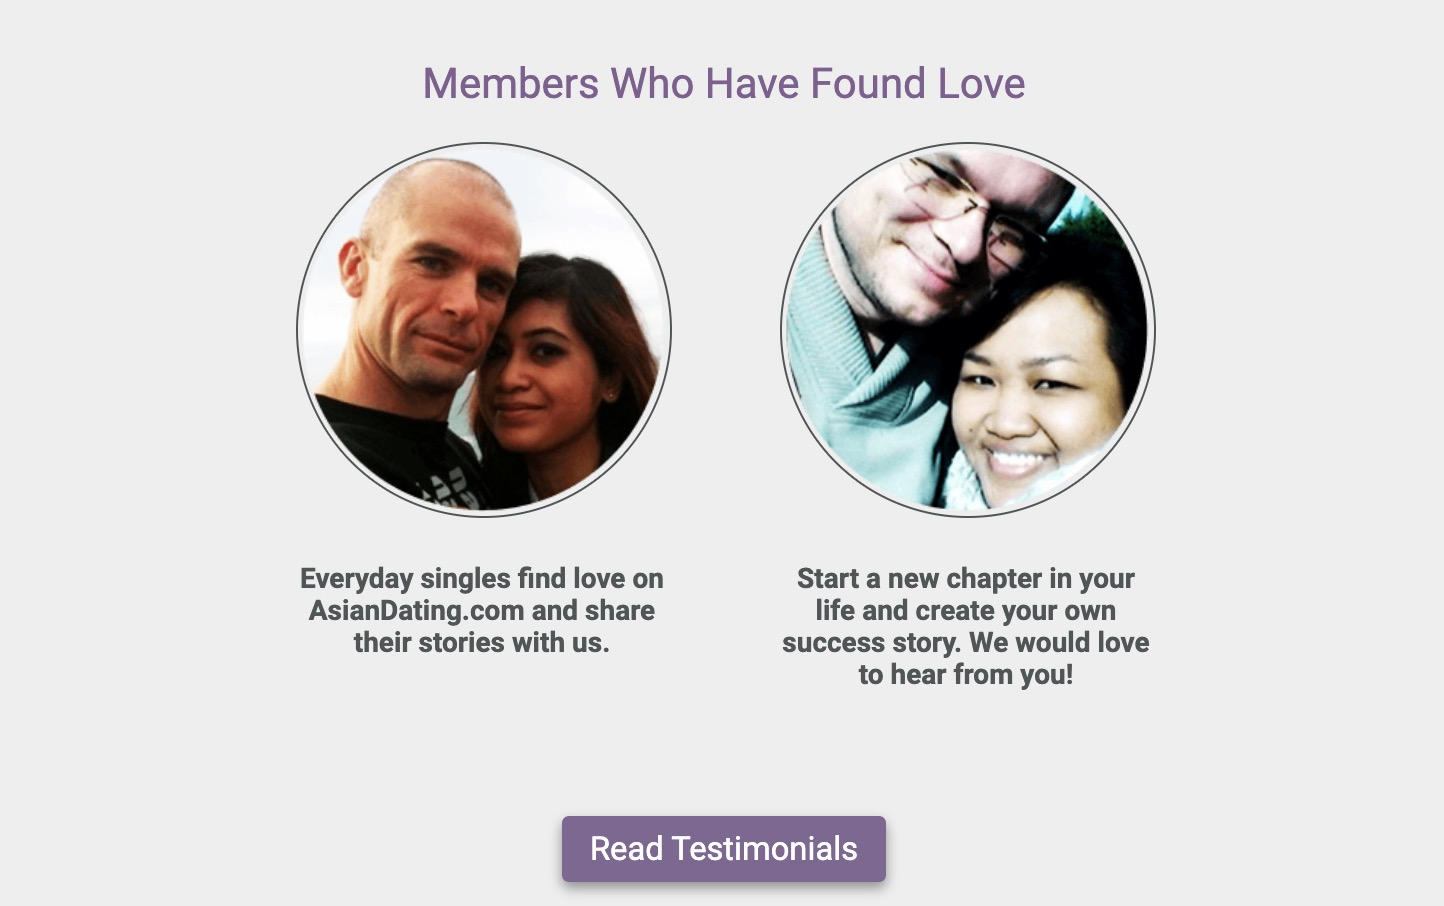 AsianDating members who found love